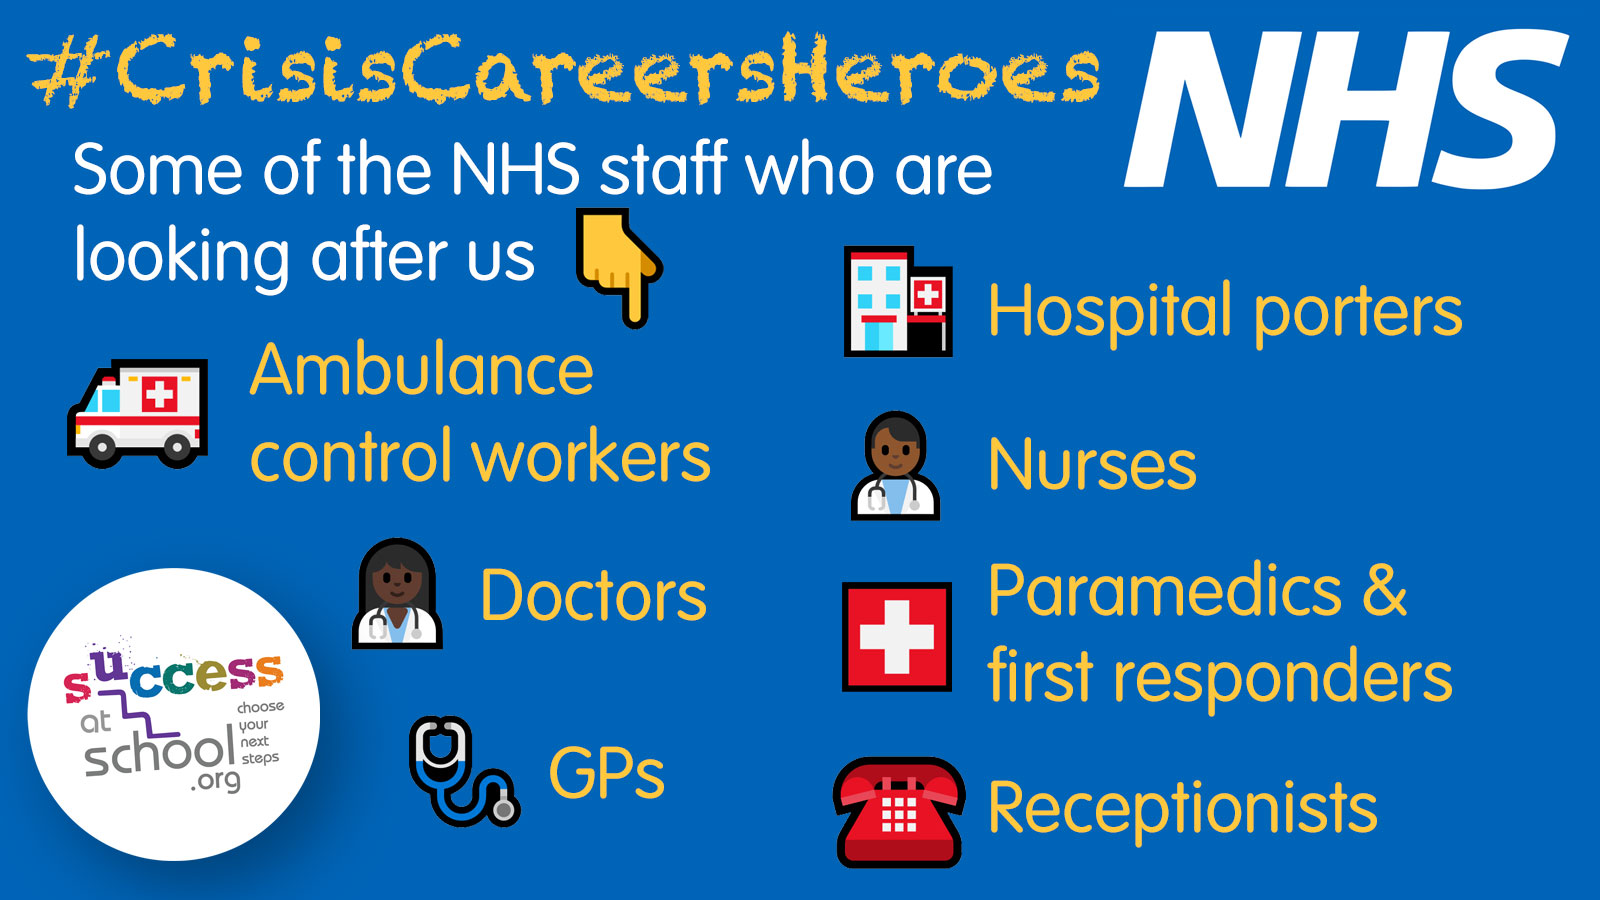 #CrisisCareersHeroes graphic